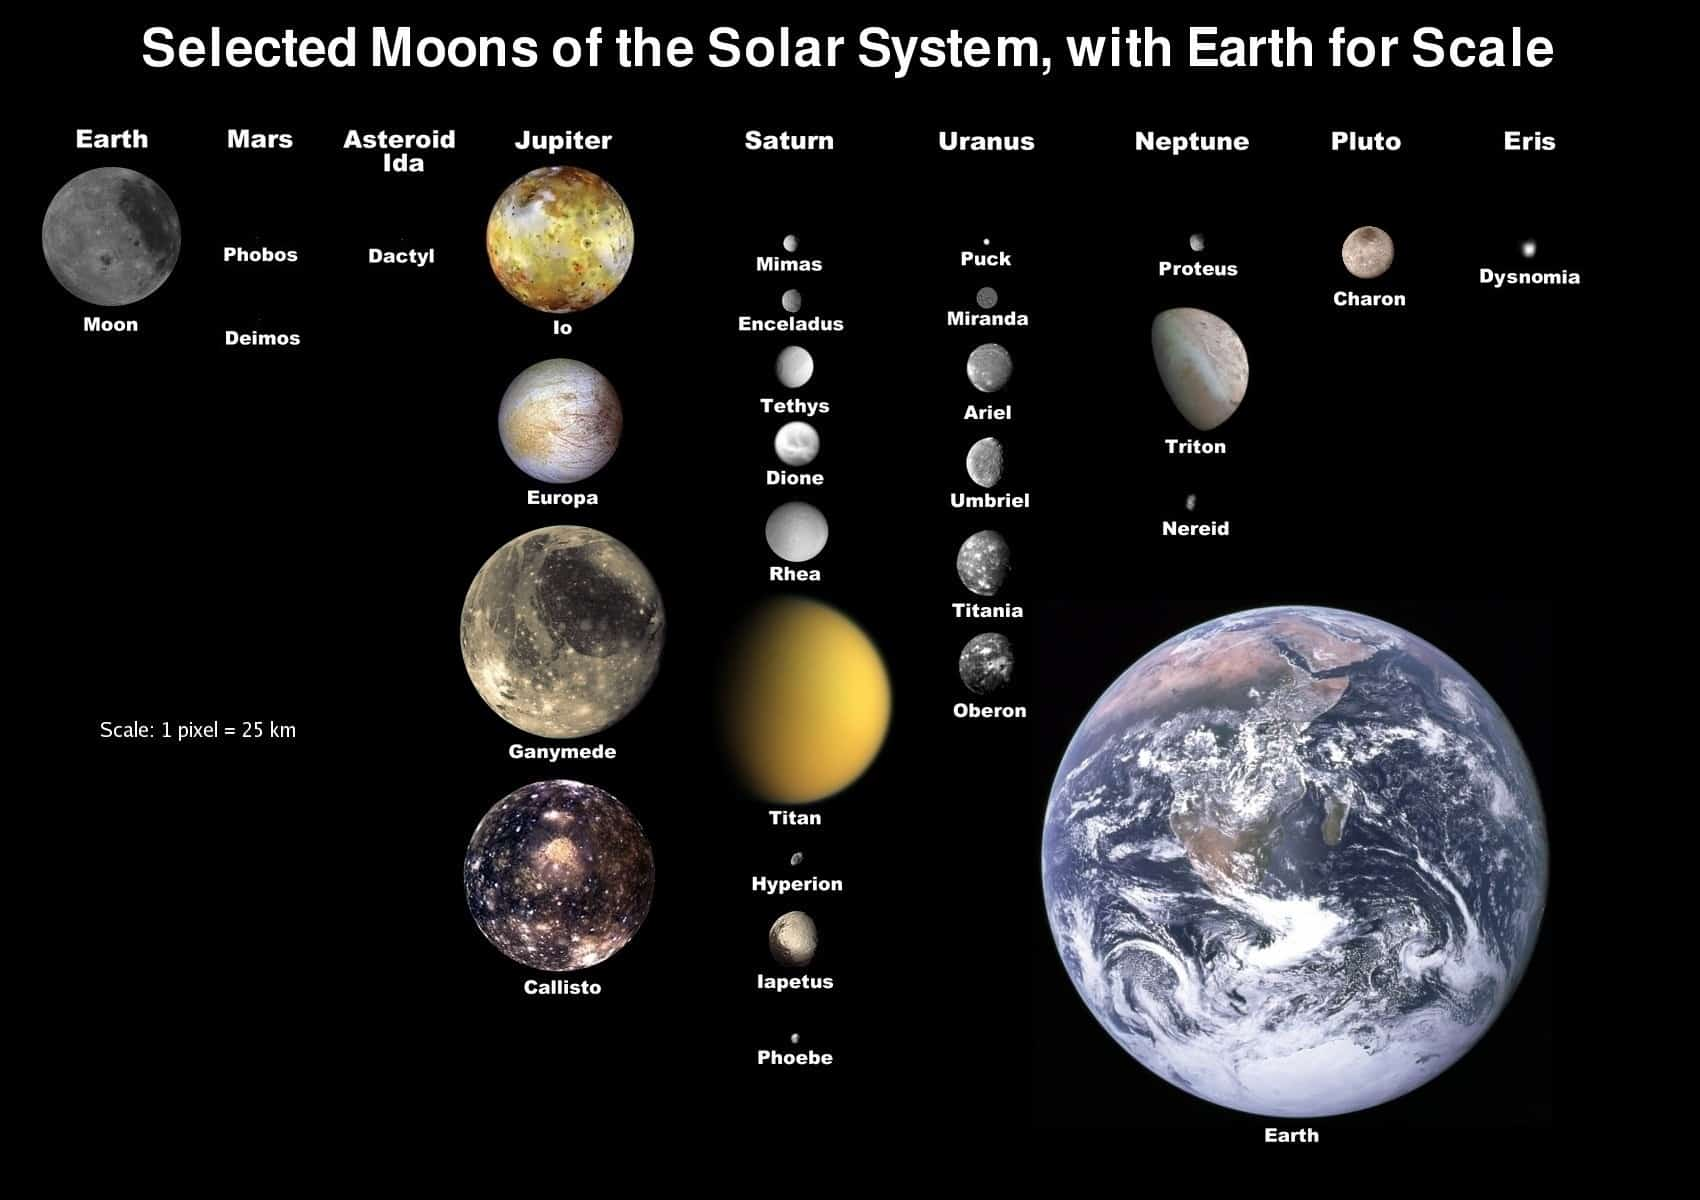 Selected moons of the solar system